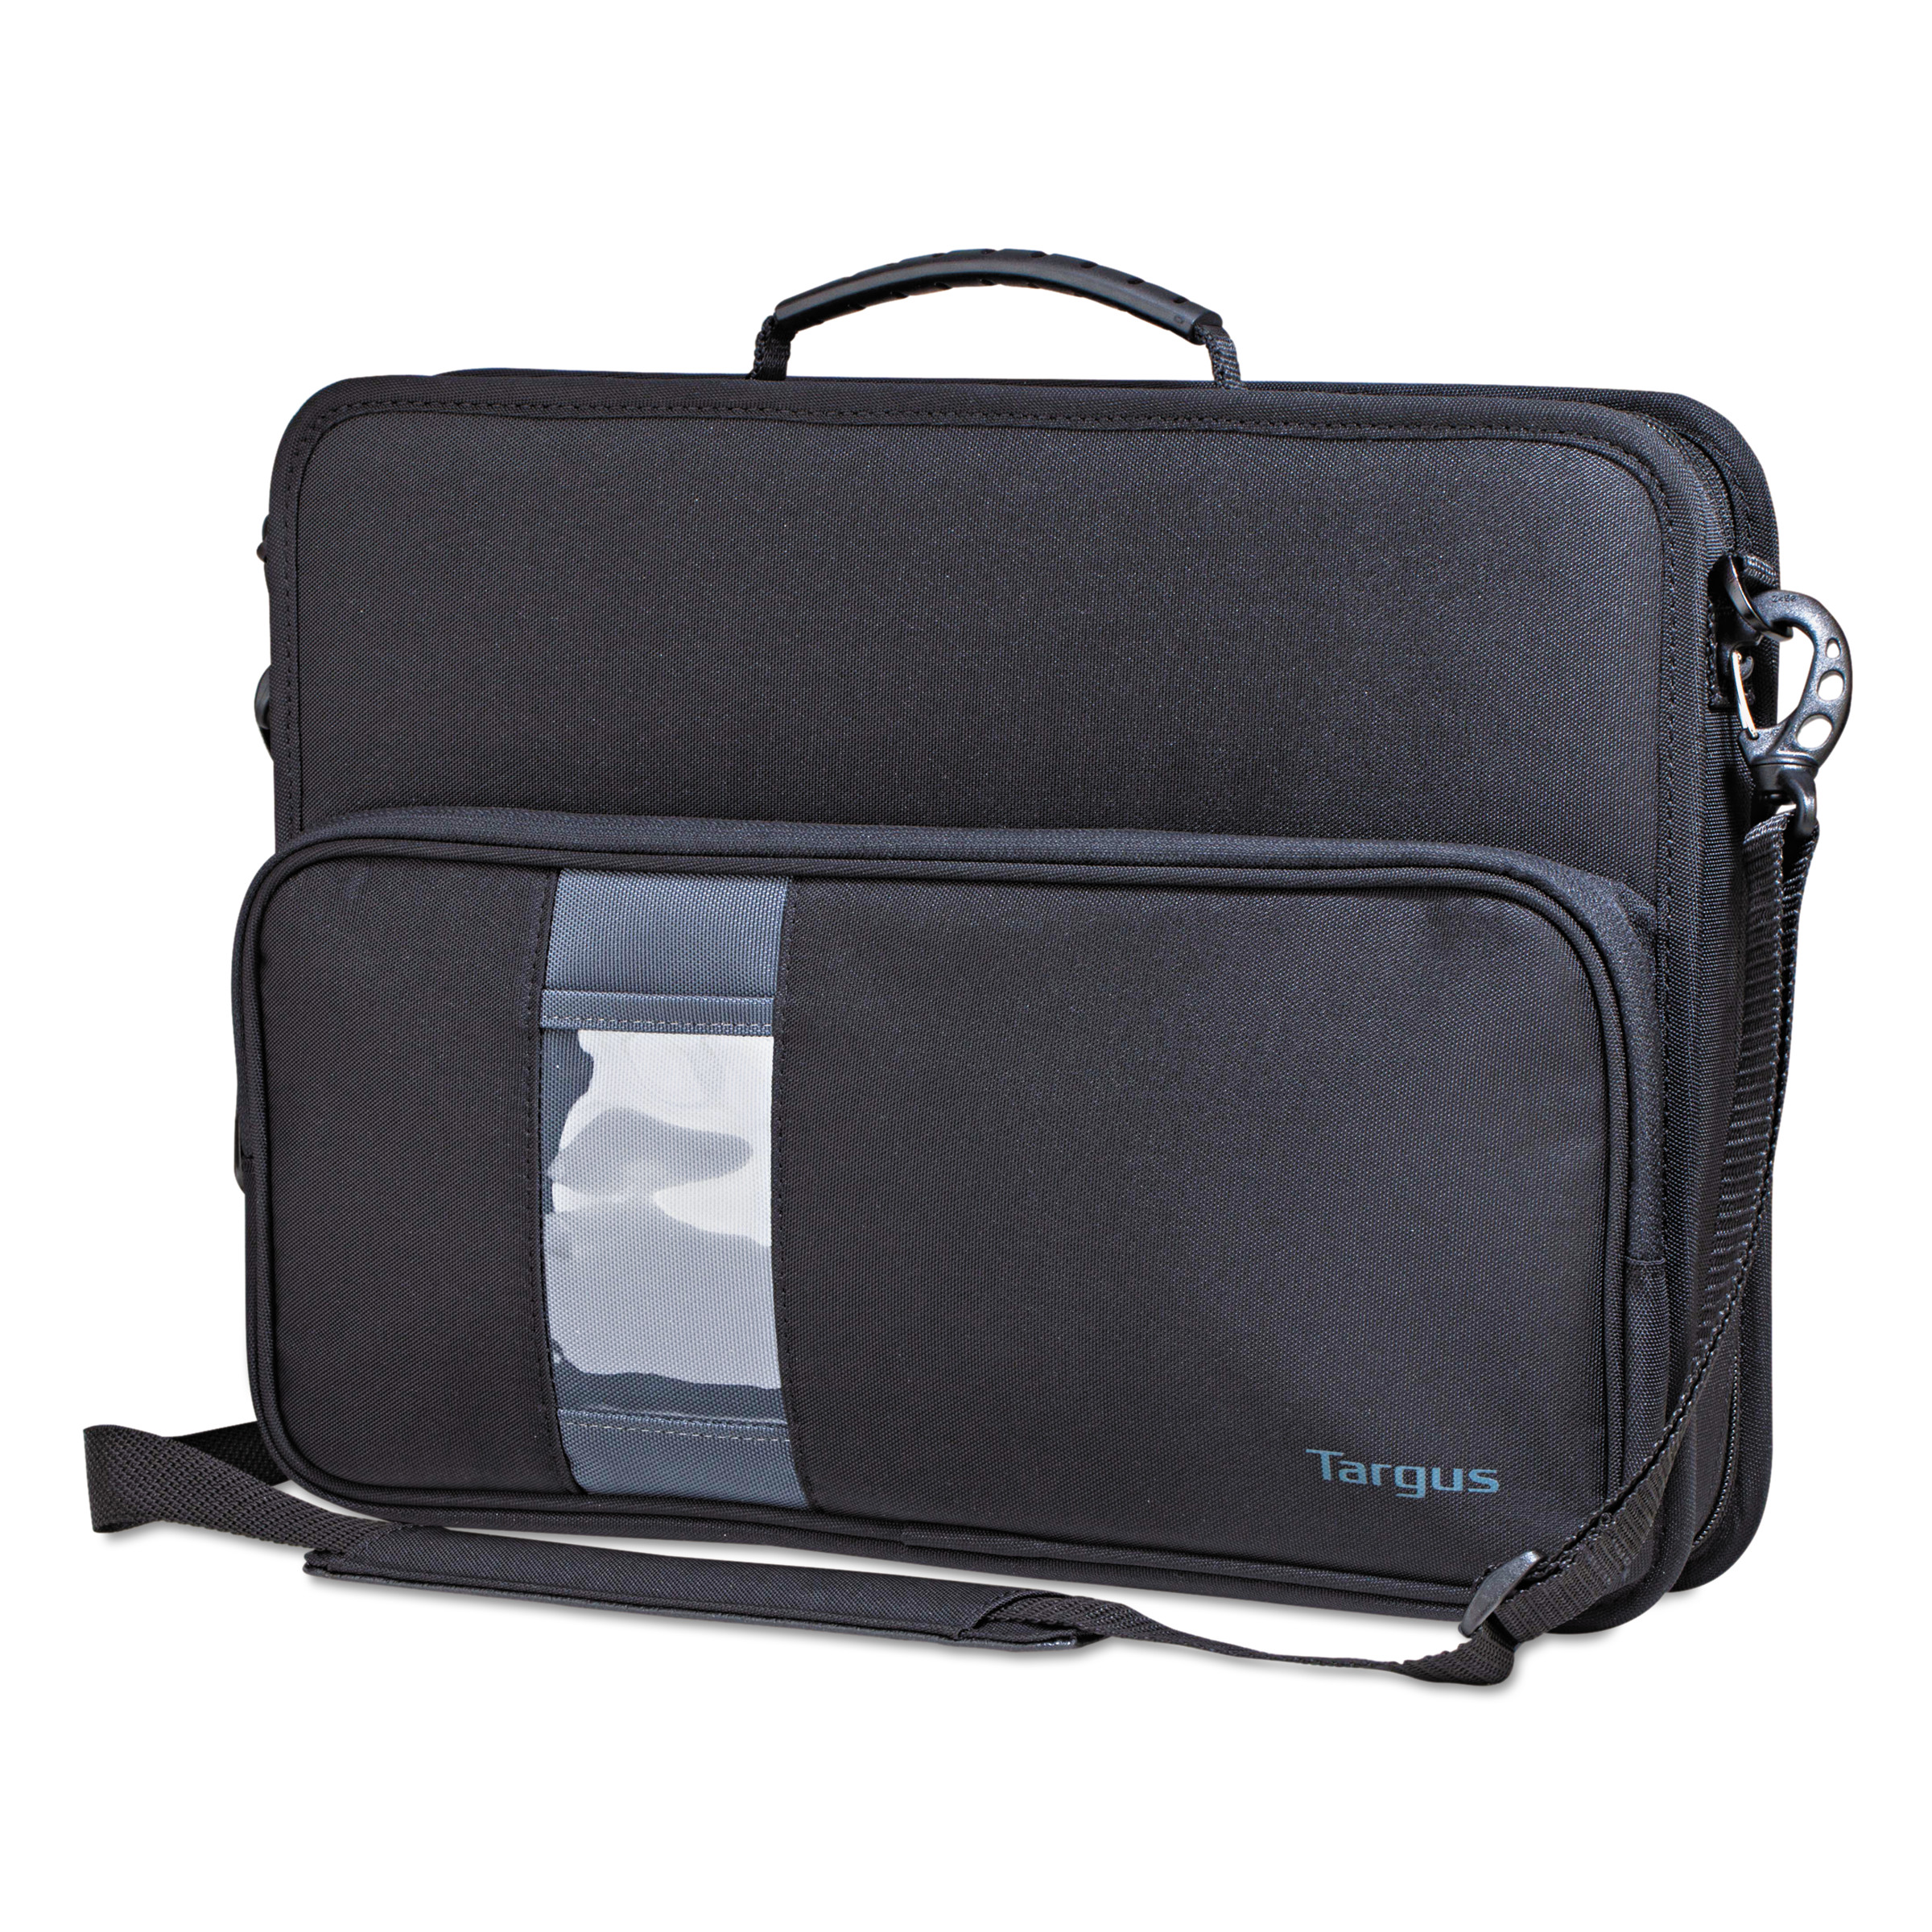 "Targus Work-in Case for Chromebook, 14"", 2 1/2 x 15 x 11 1/2, Black"